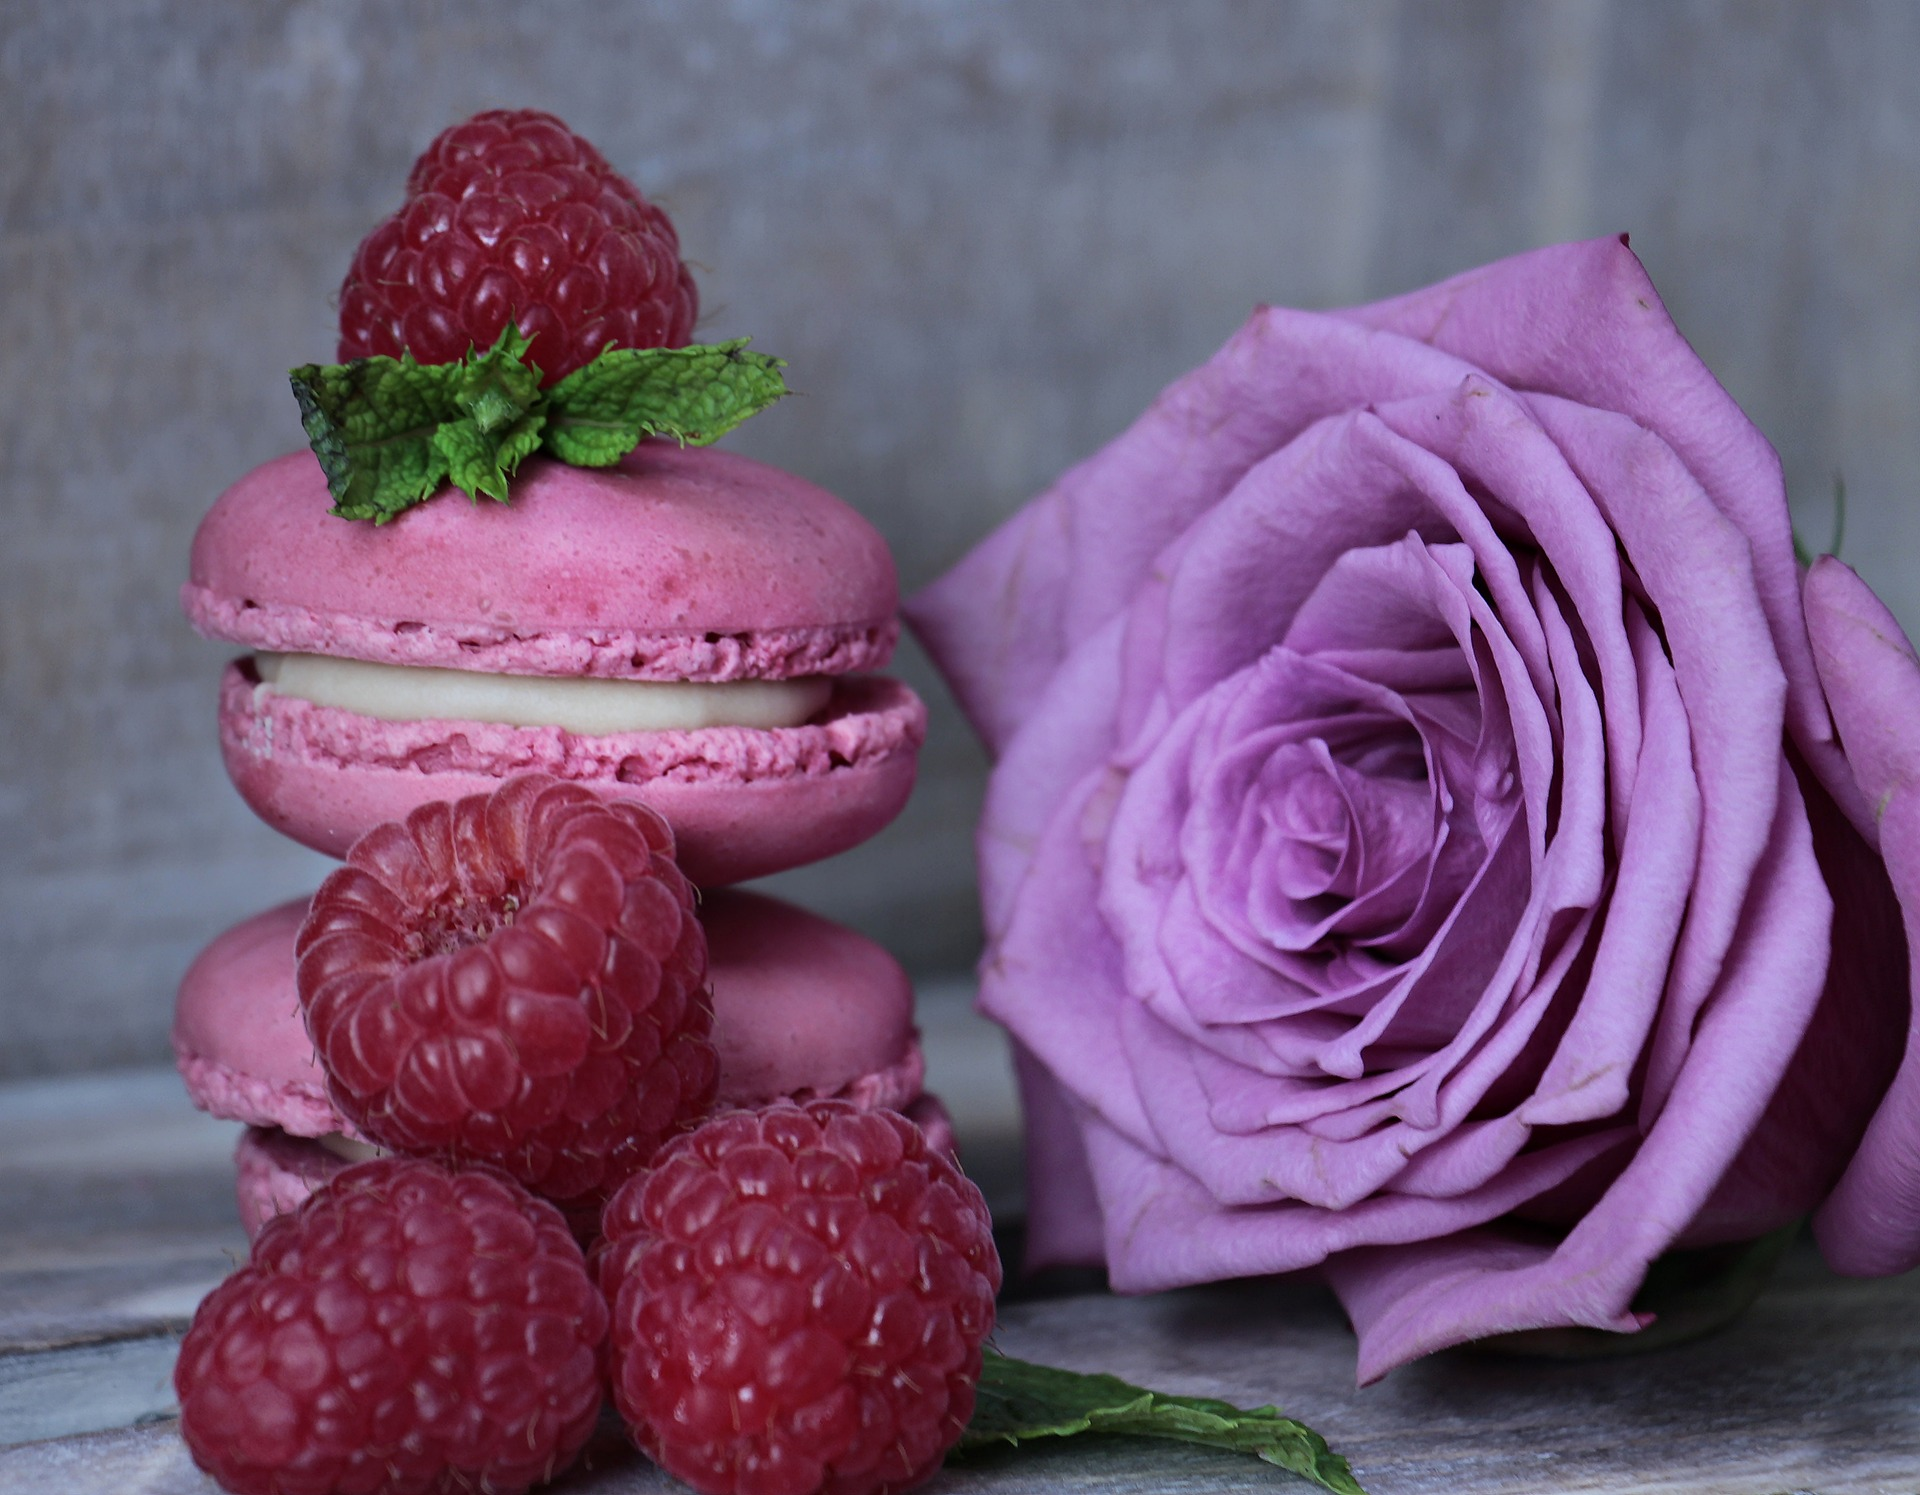 macarons and french food